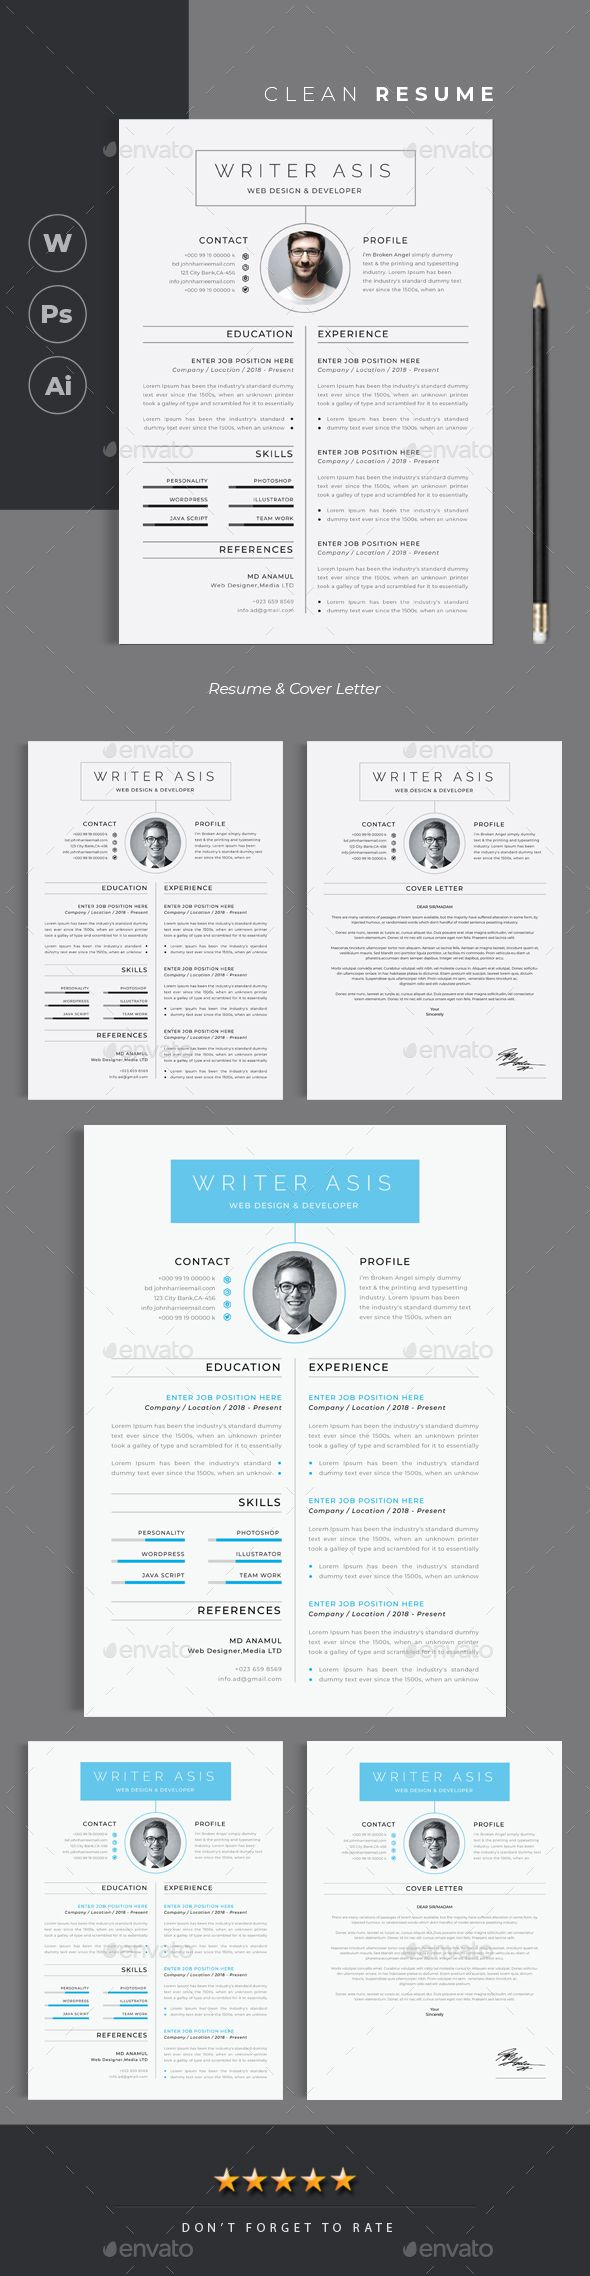 Clean Resume #business #text  • Download here → https://graphicriver.net/item/clean-resume/21286339?ref=pxcr